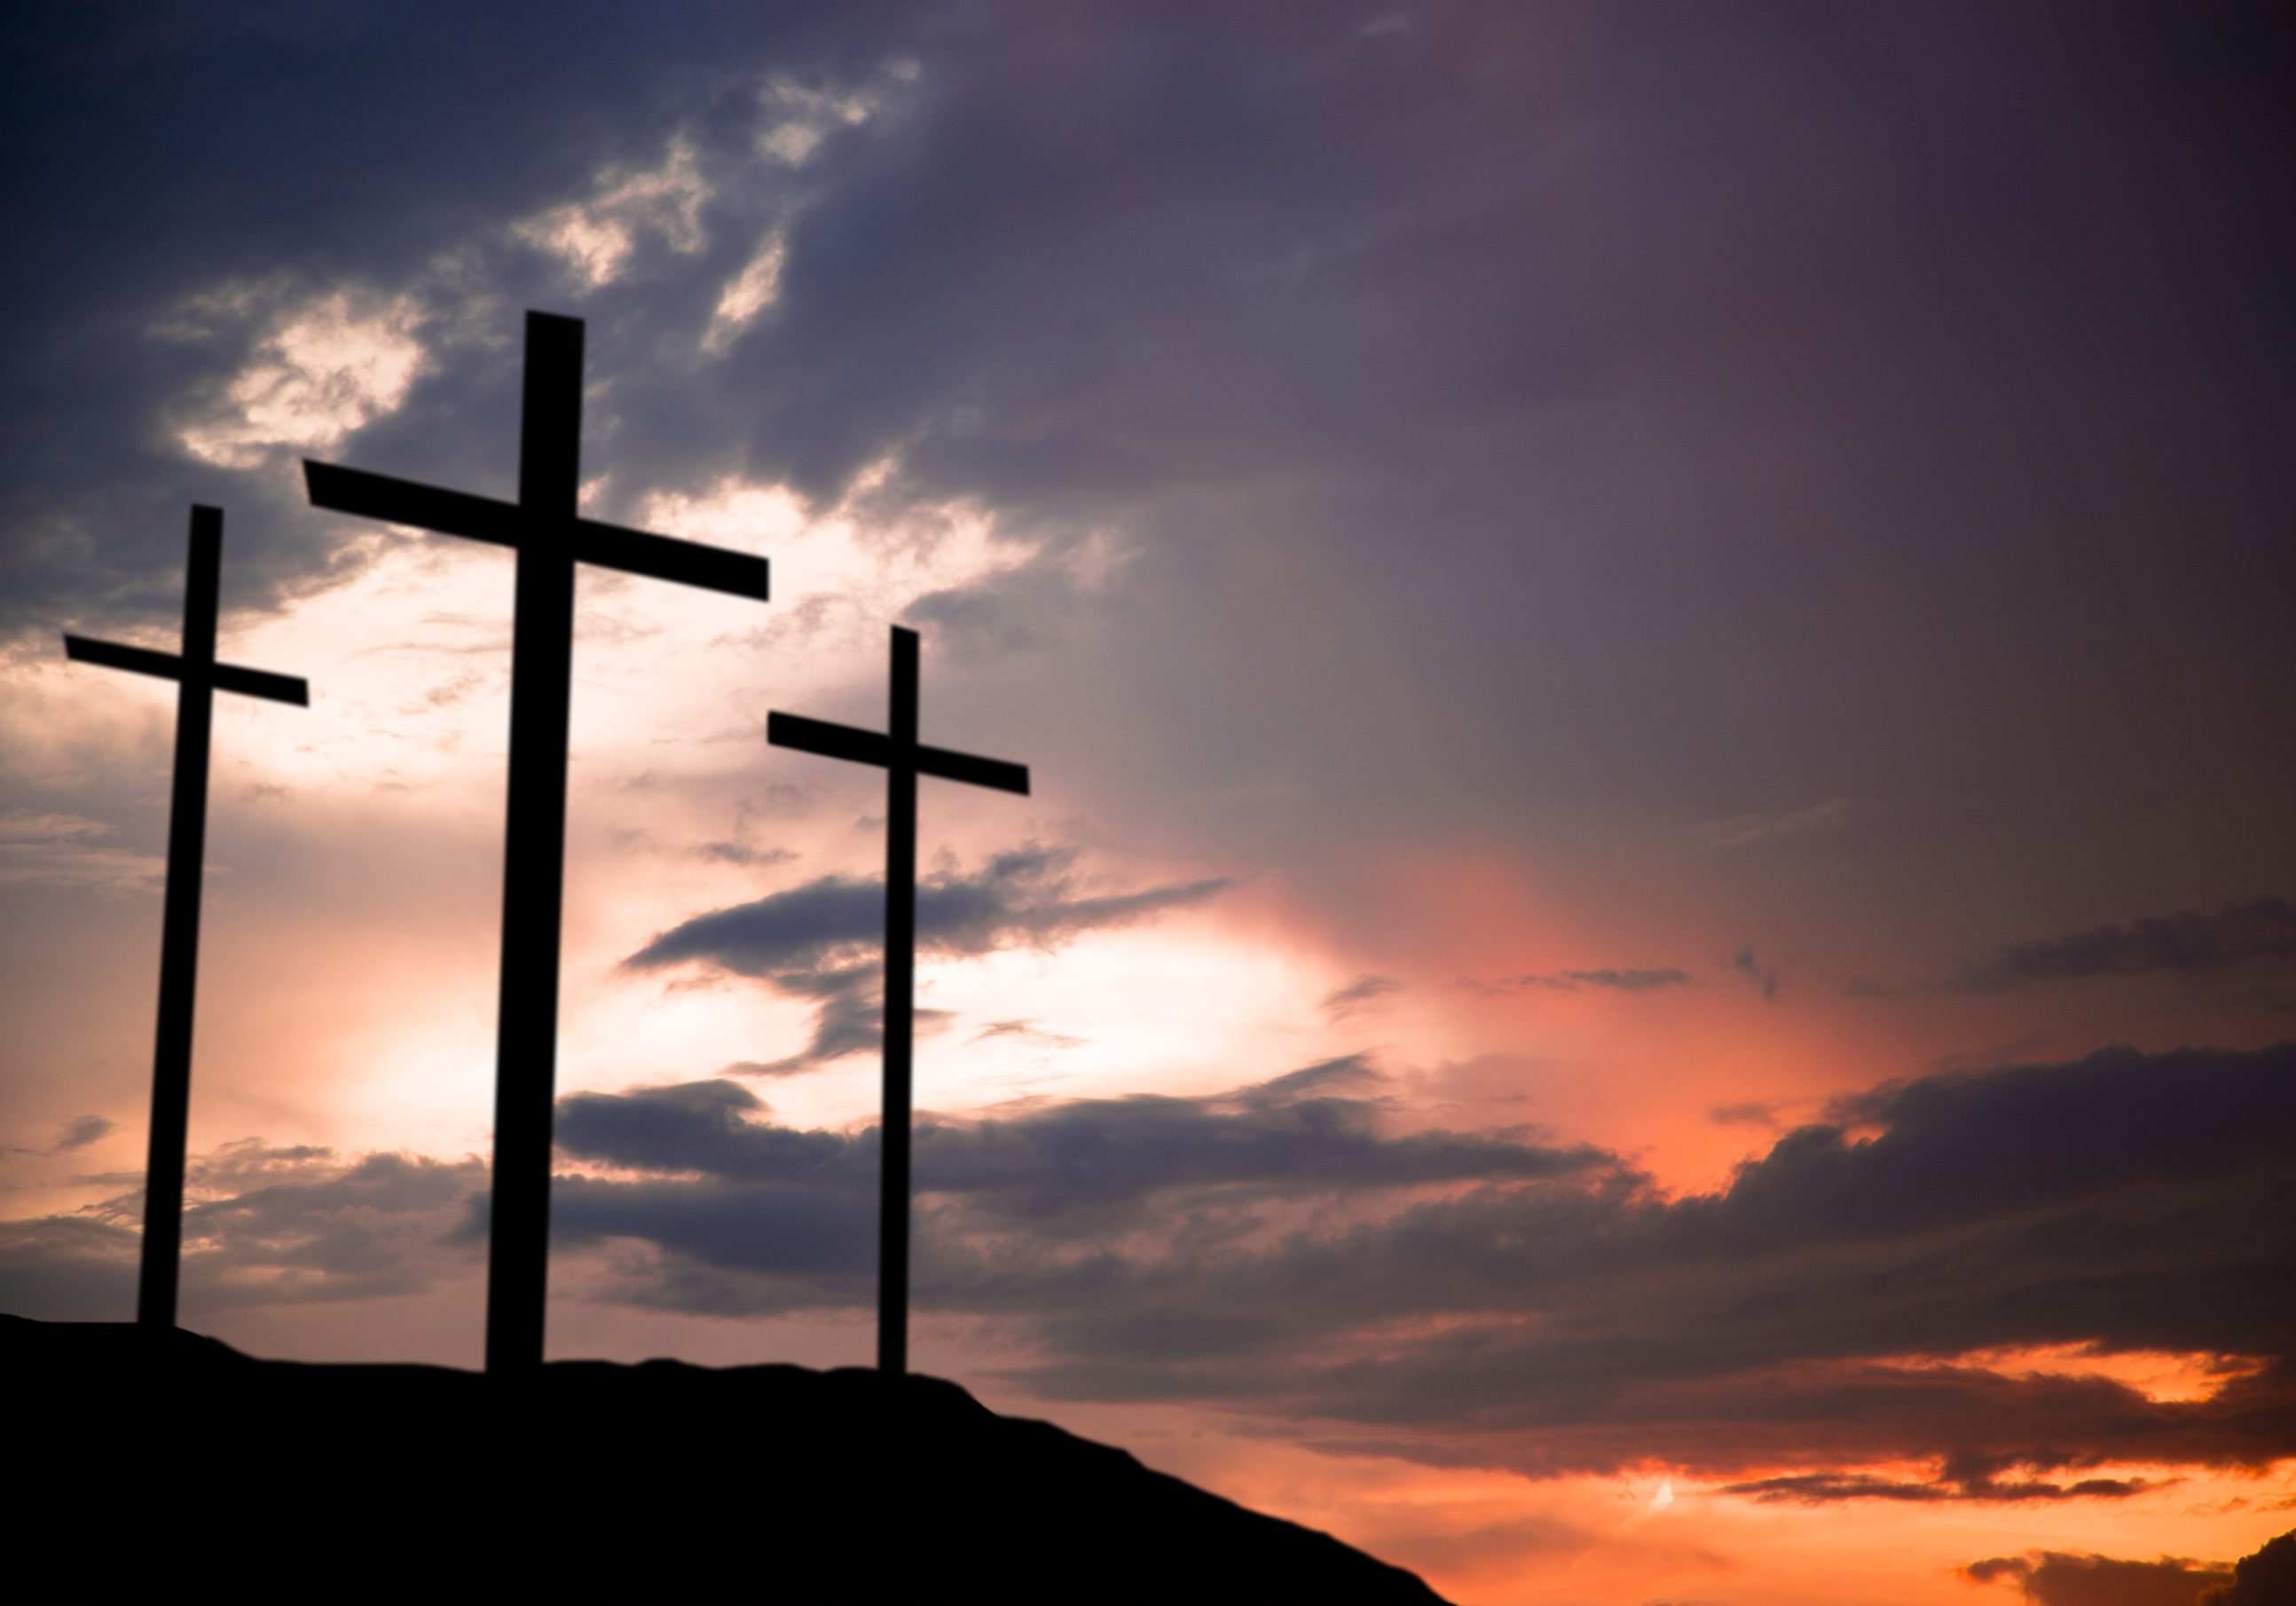 Easter.  The crucifixion.  Three wooden crosses in silhouette stand silently on a hill at sunset.  The dramatic sky is beautiful in its purple and orange colors.  Christianity, religious themes. Copyspace.